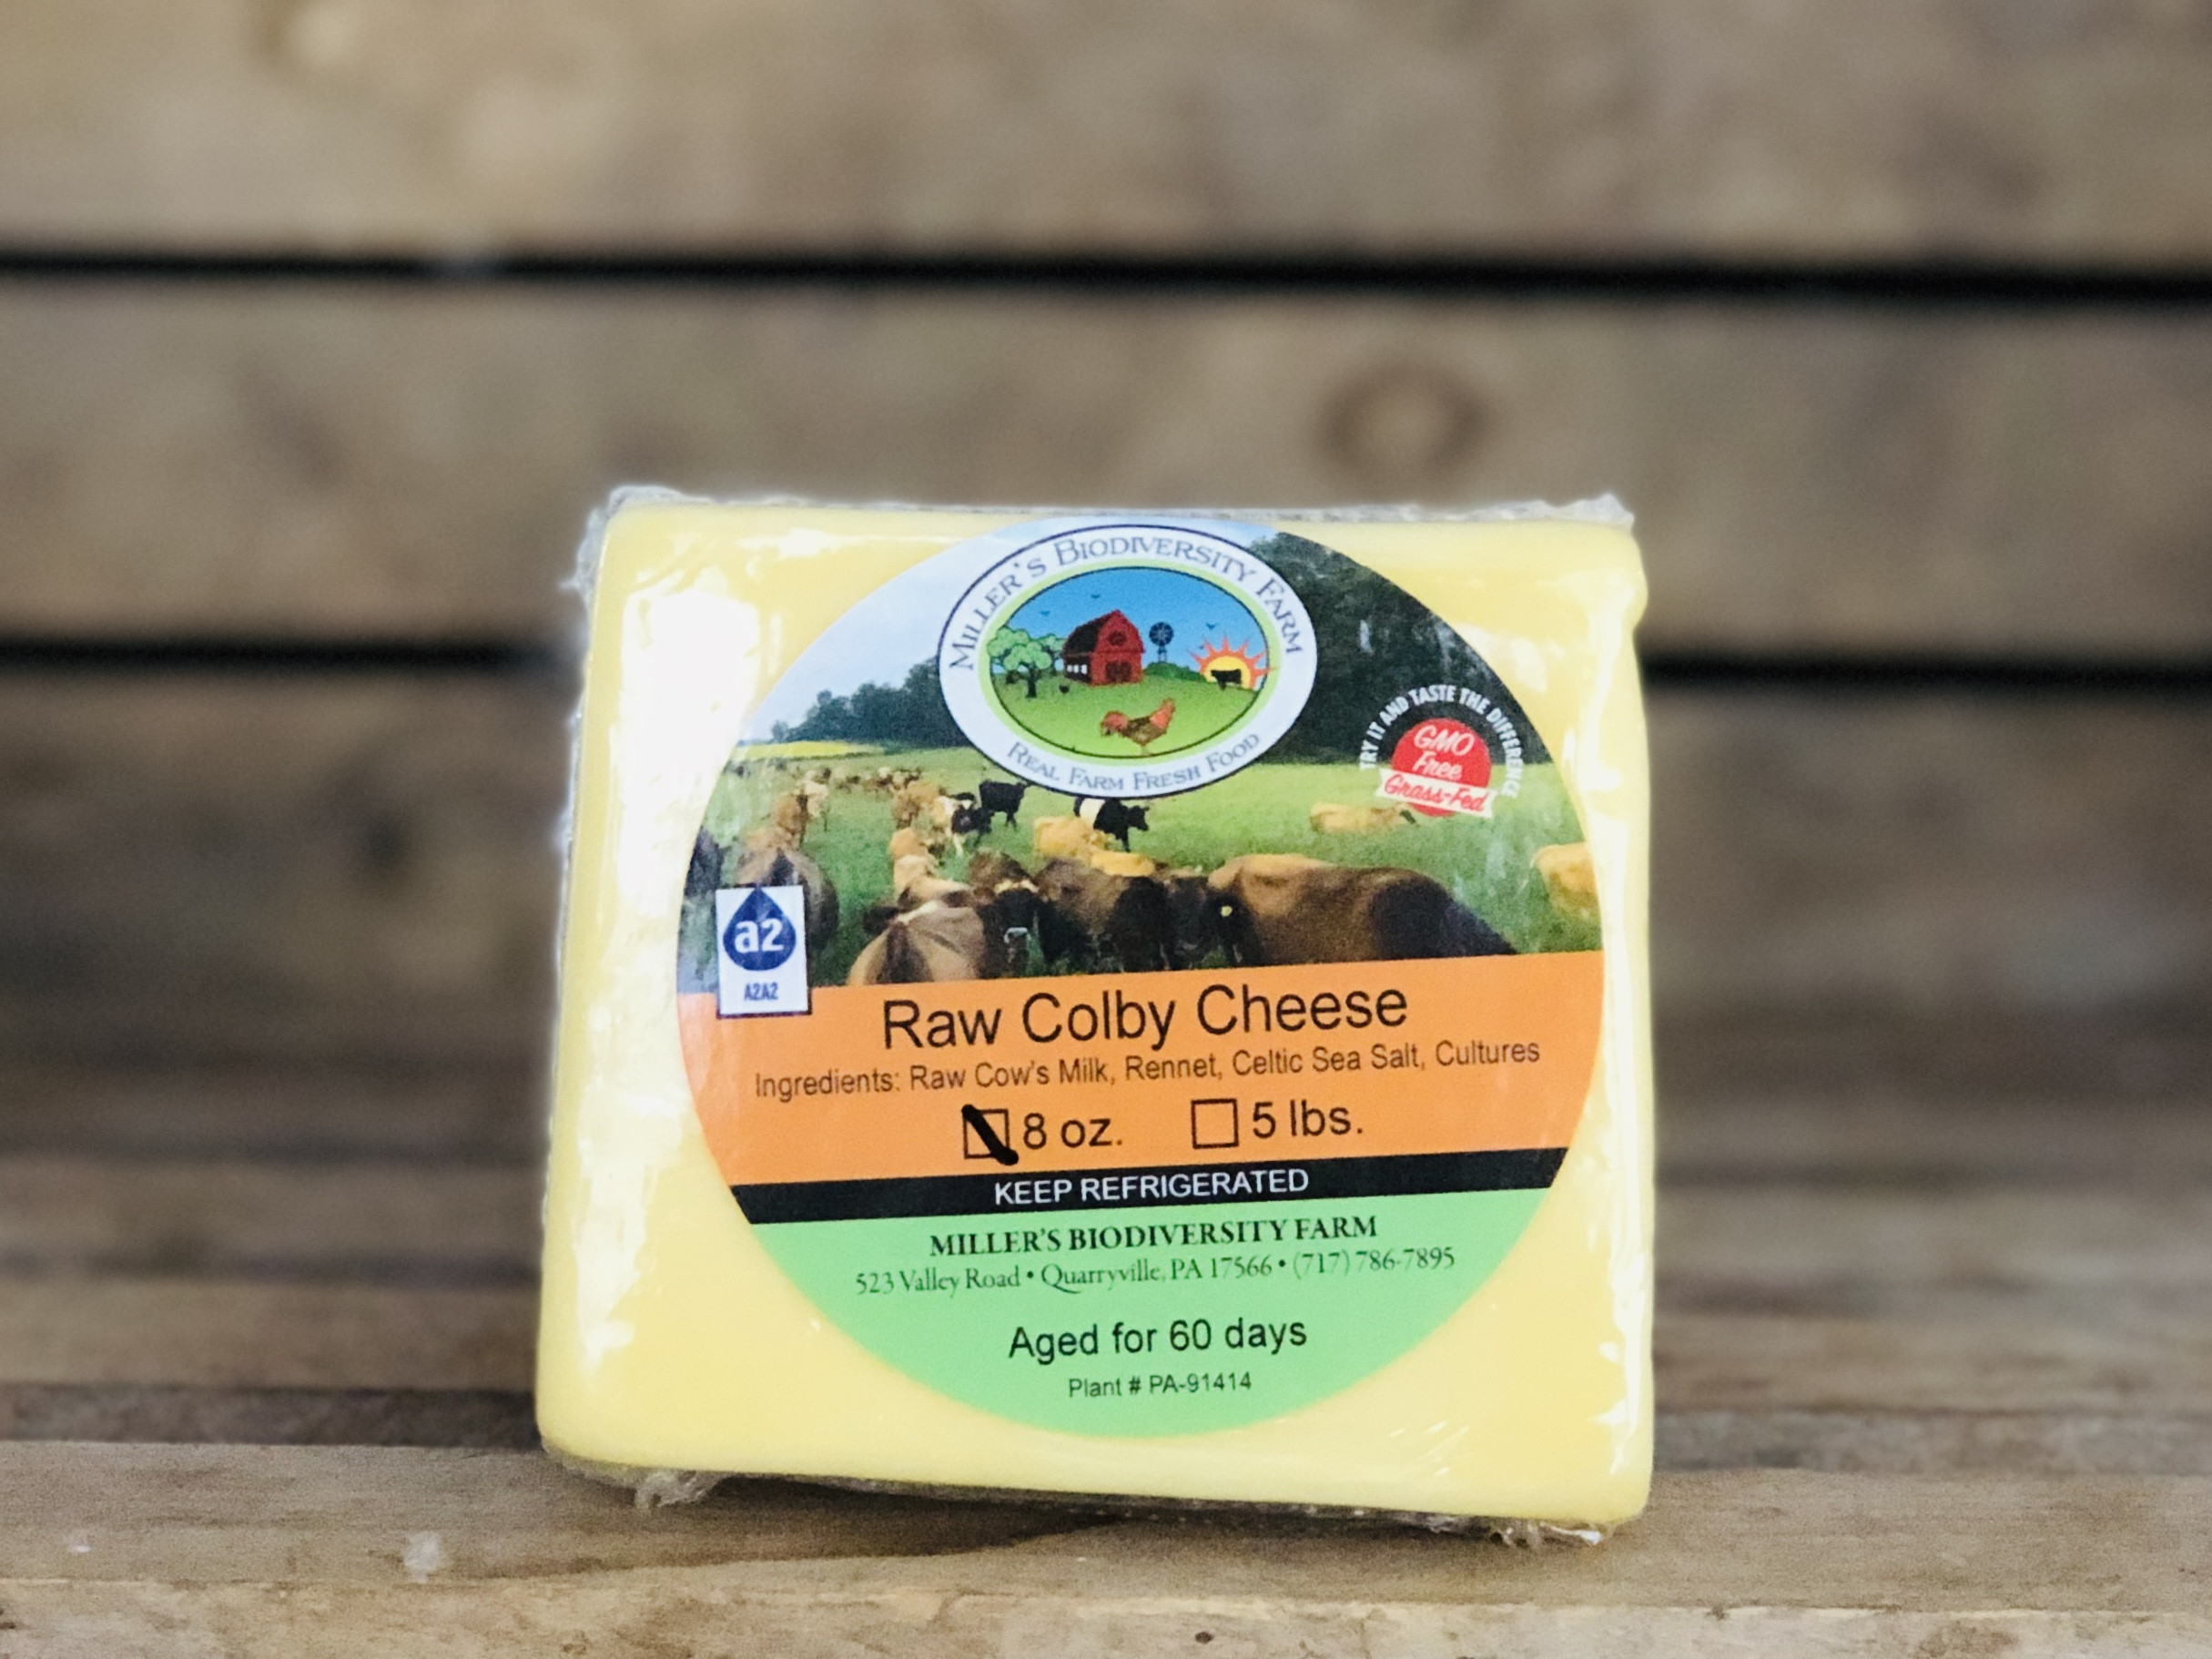 A2 Colby Cheese, 8oz